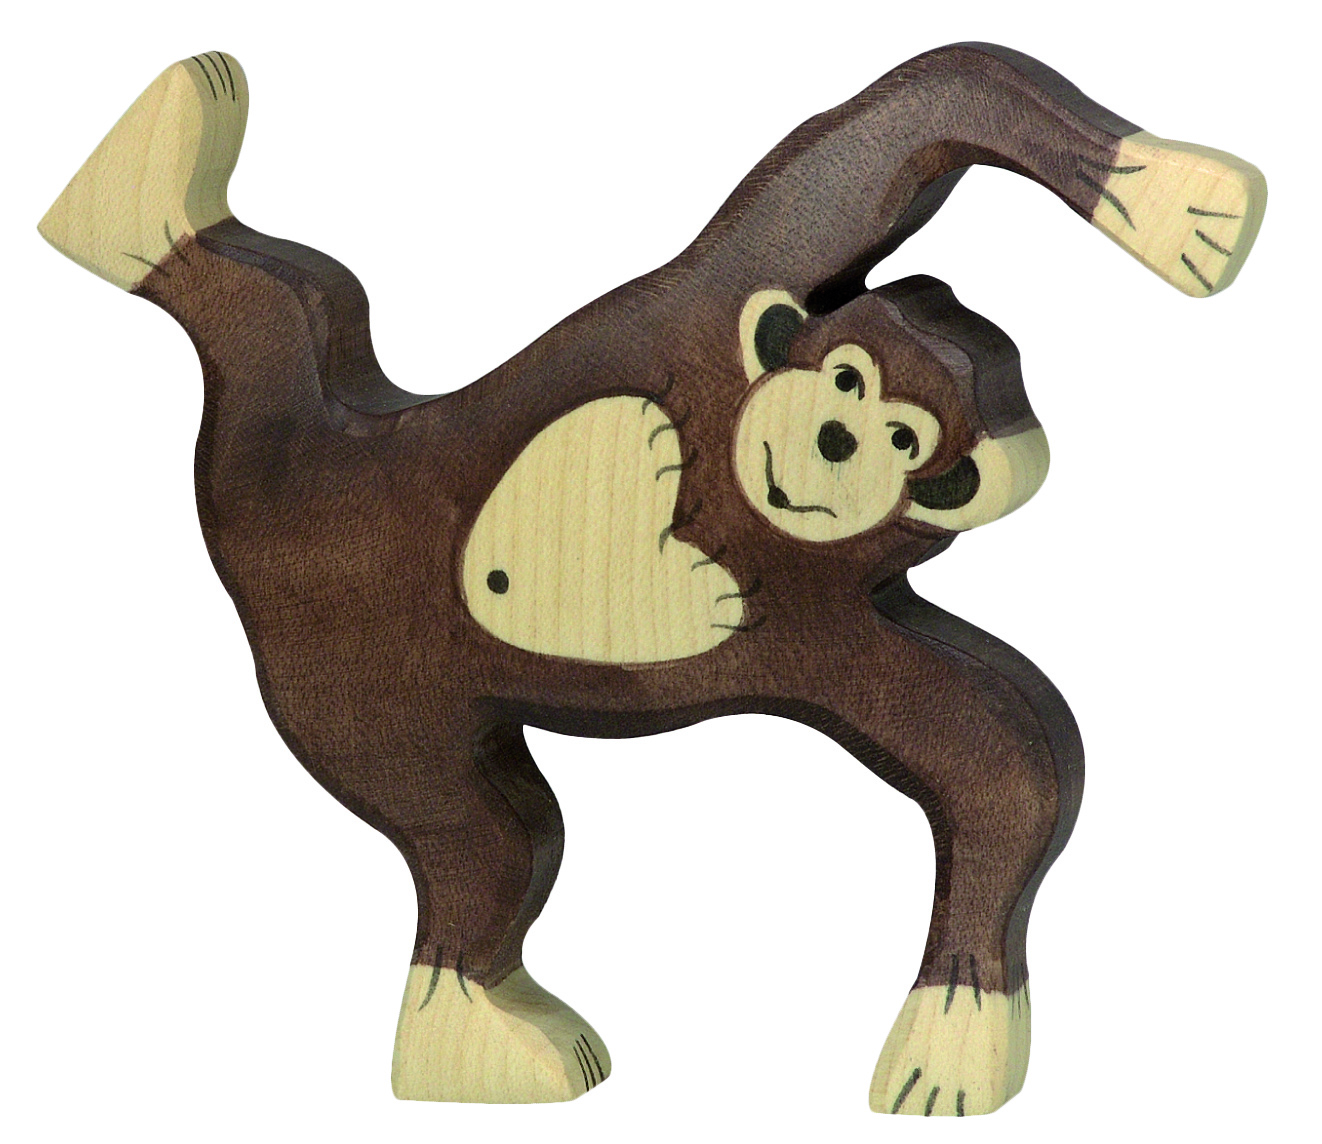 Holztiger Chimpanzee Playing Image